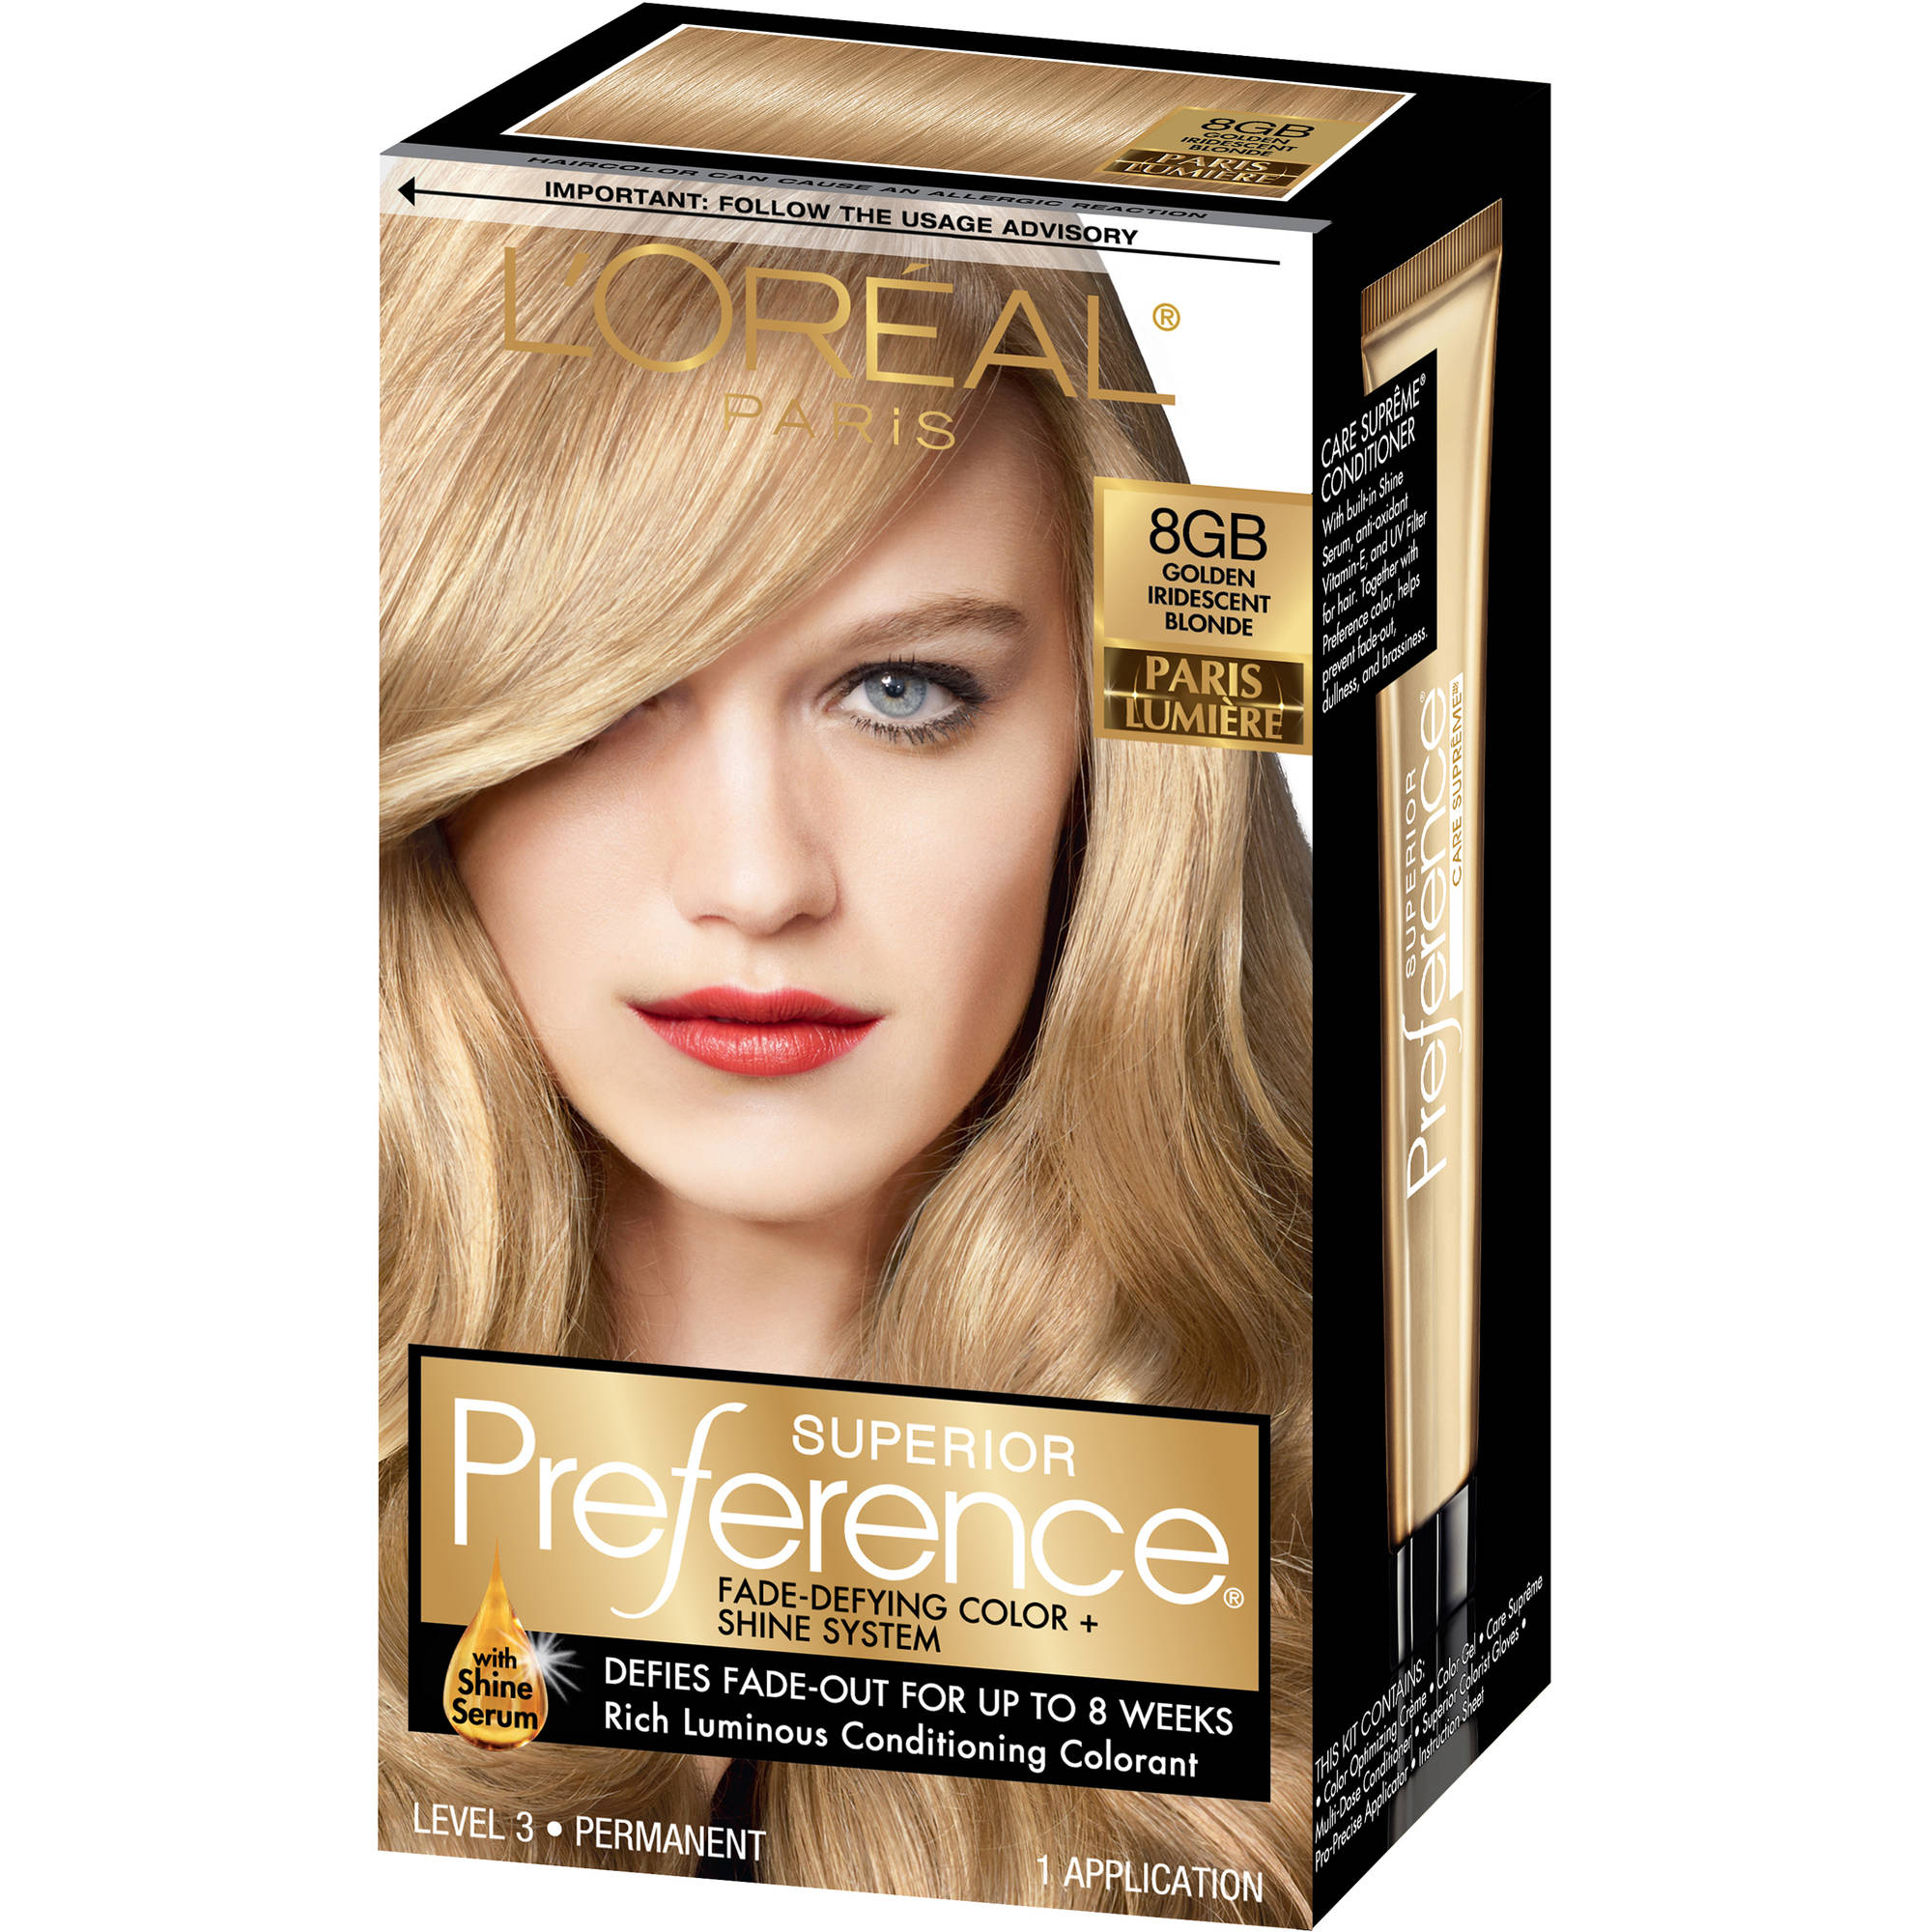 Loreal Paris Superior Preference Fade Defying Color Shine Hair